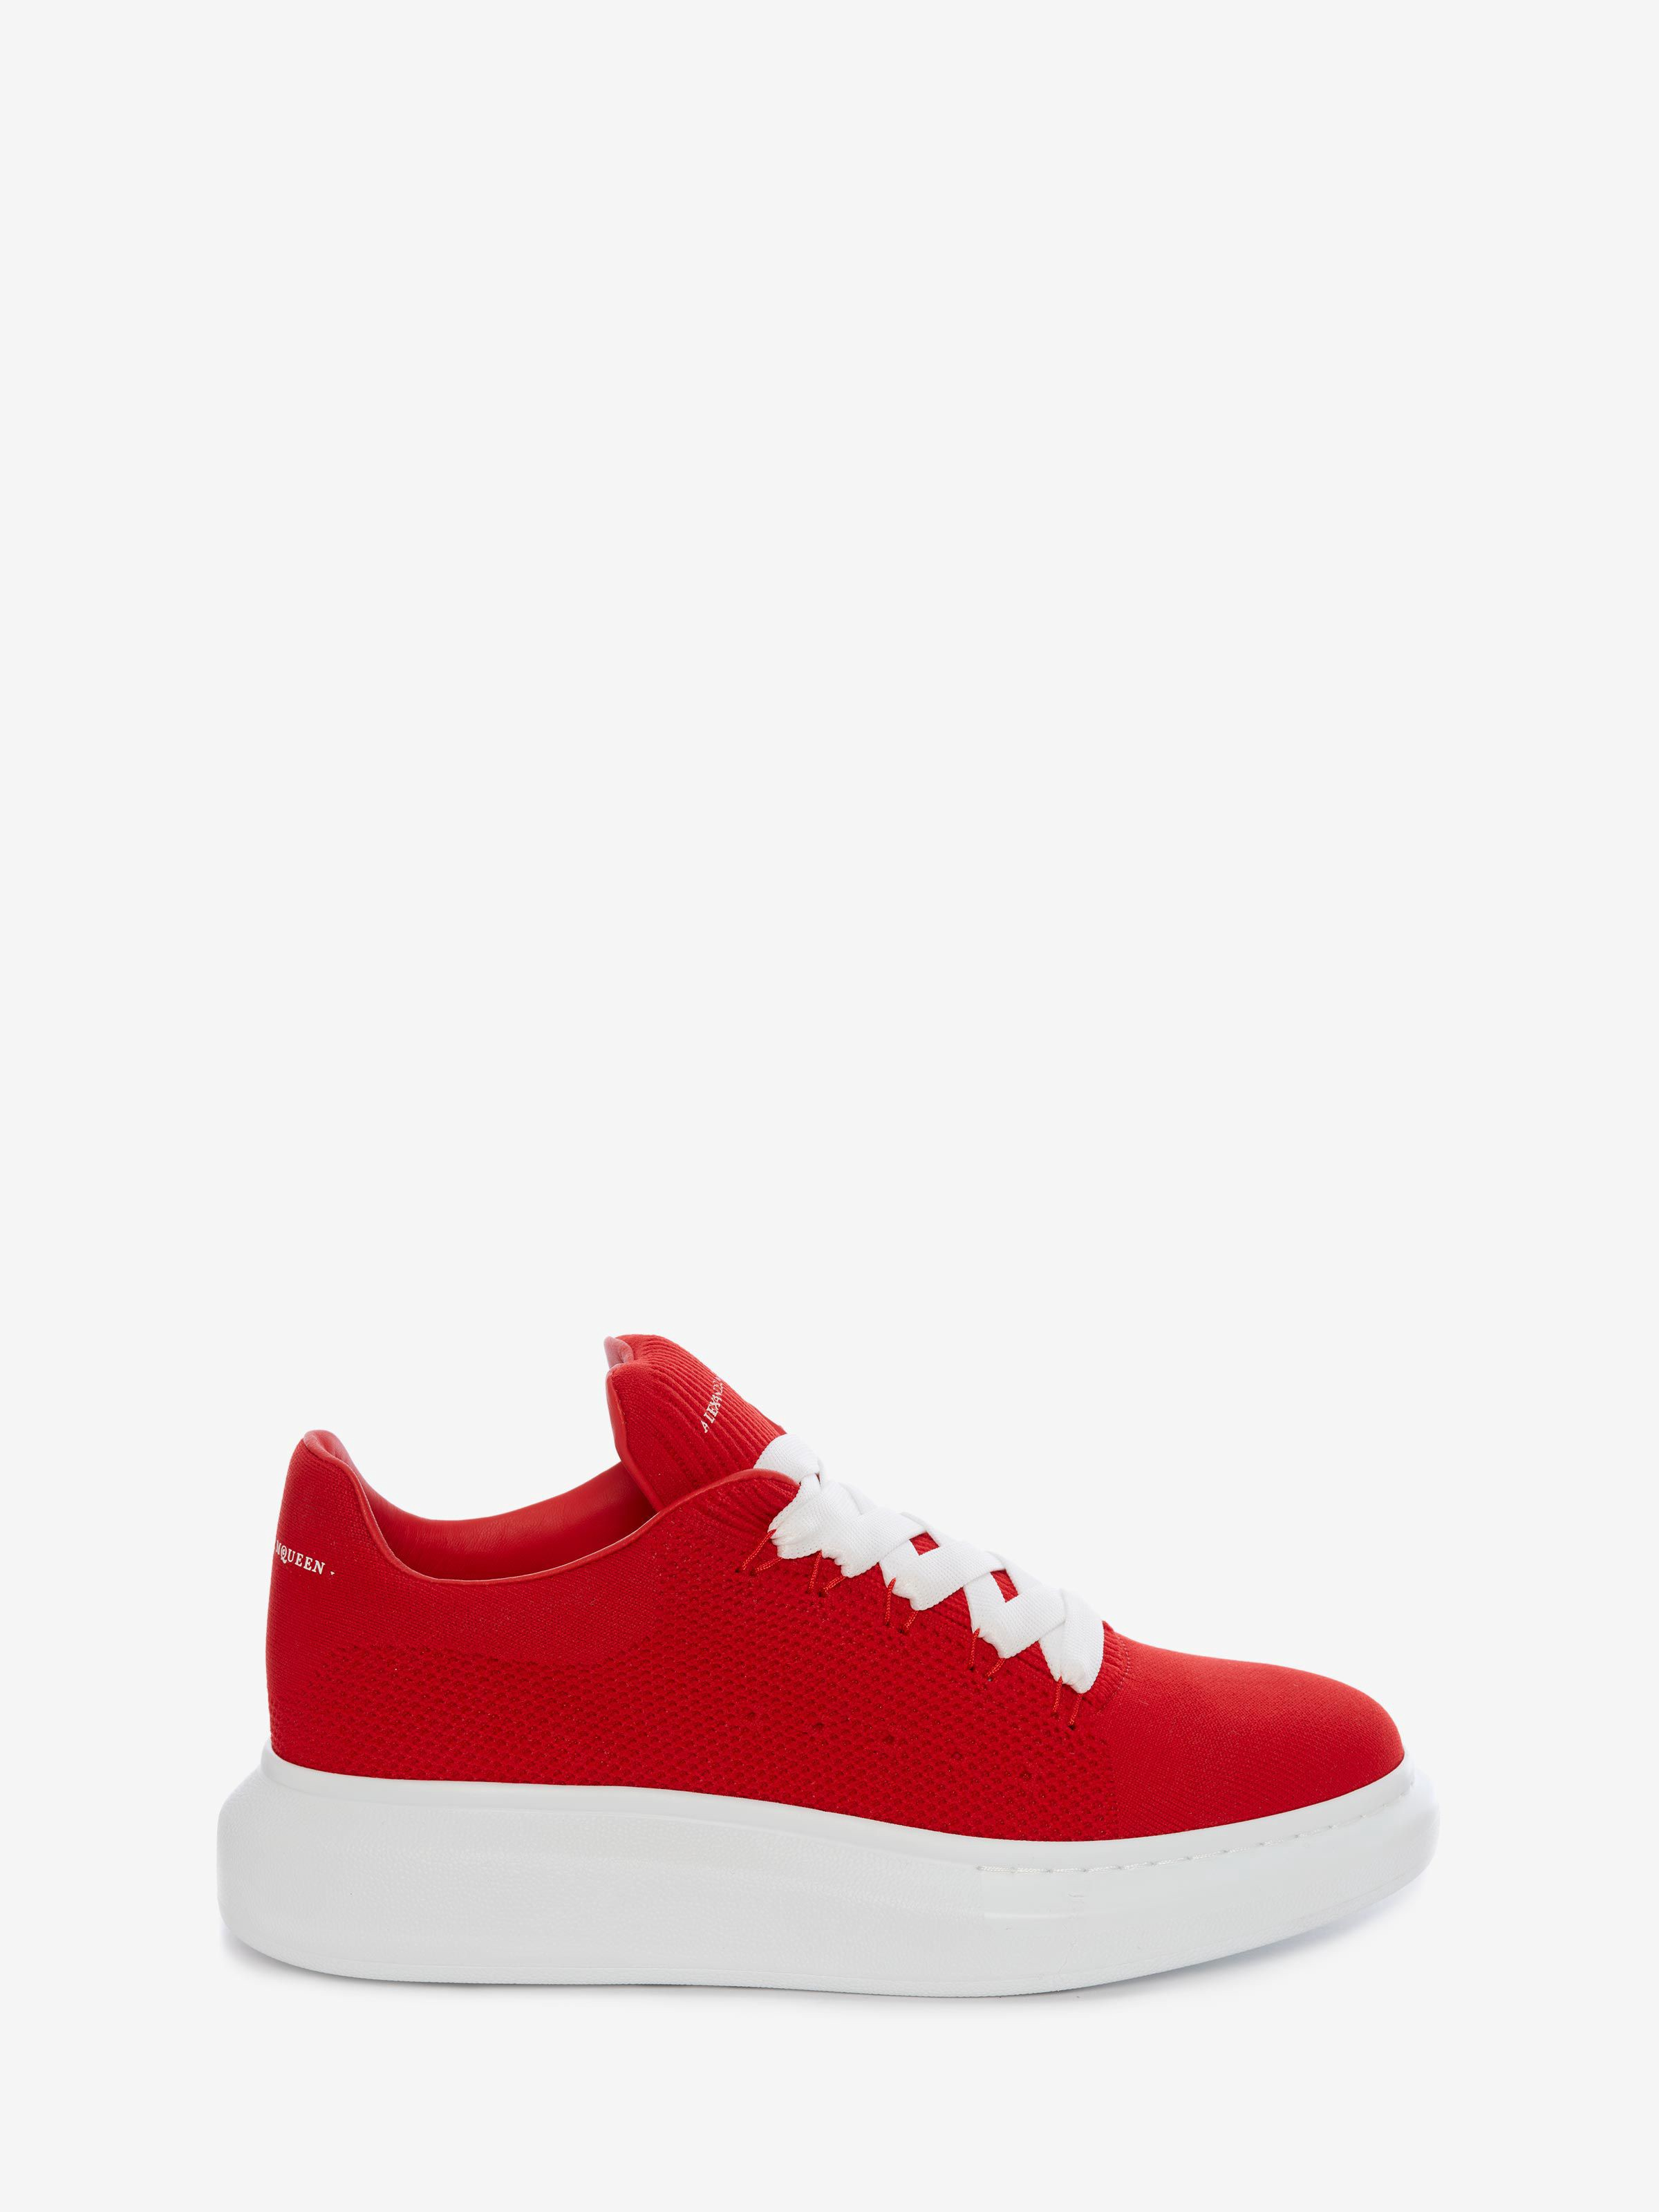 Alexander Mcqueen Red Knit Oversized Sneakers In 6418flmred Modesens